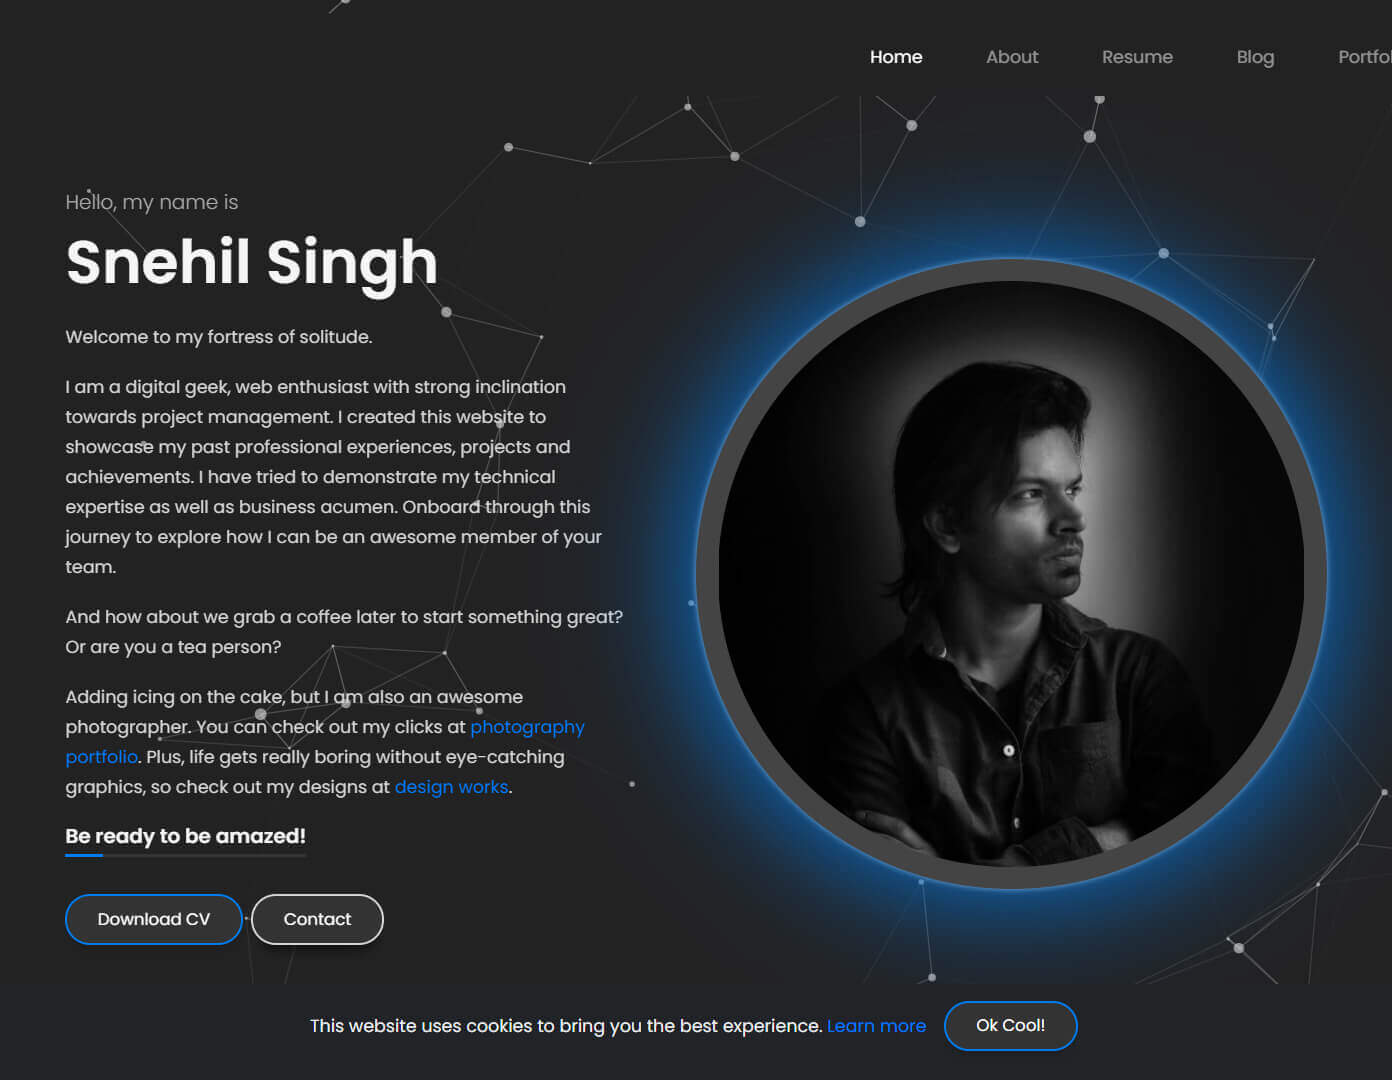 Snehil Singh Website Display Image